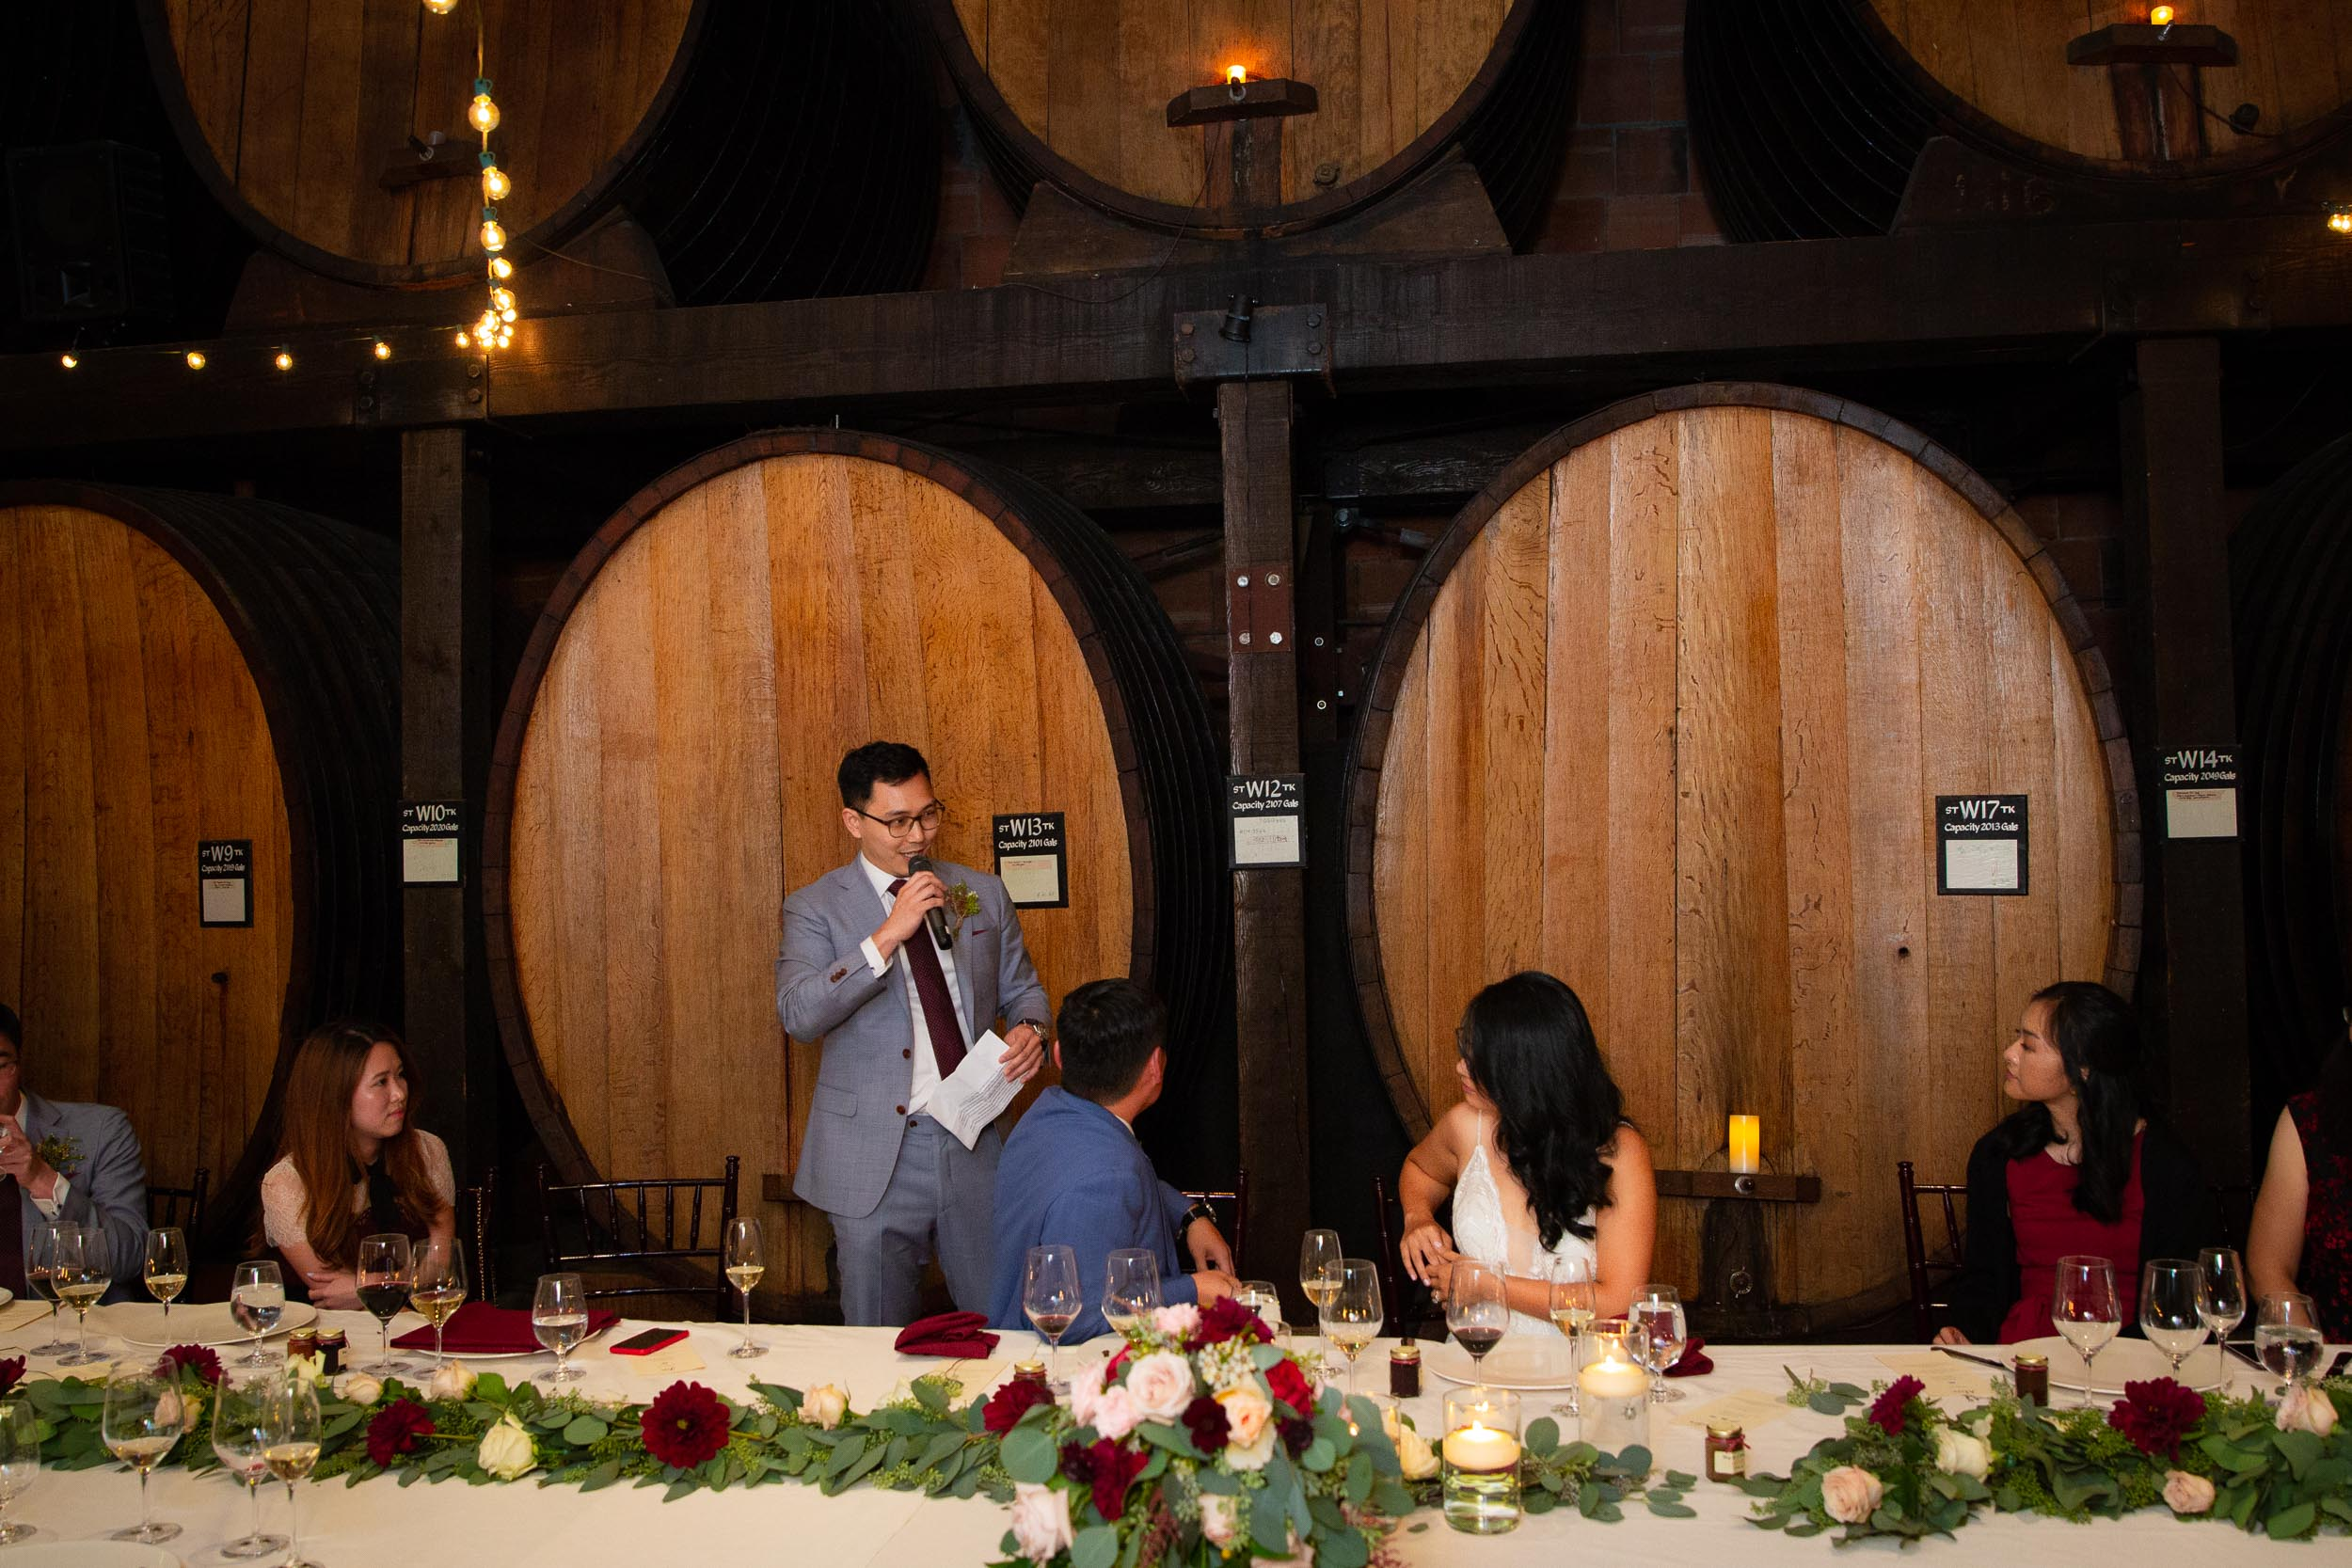 Merryvale Vineyards Wedding-48.jpg